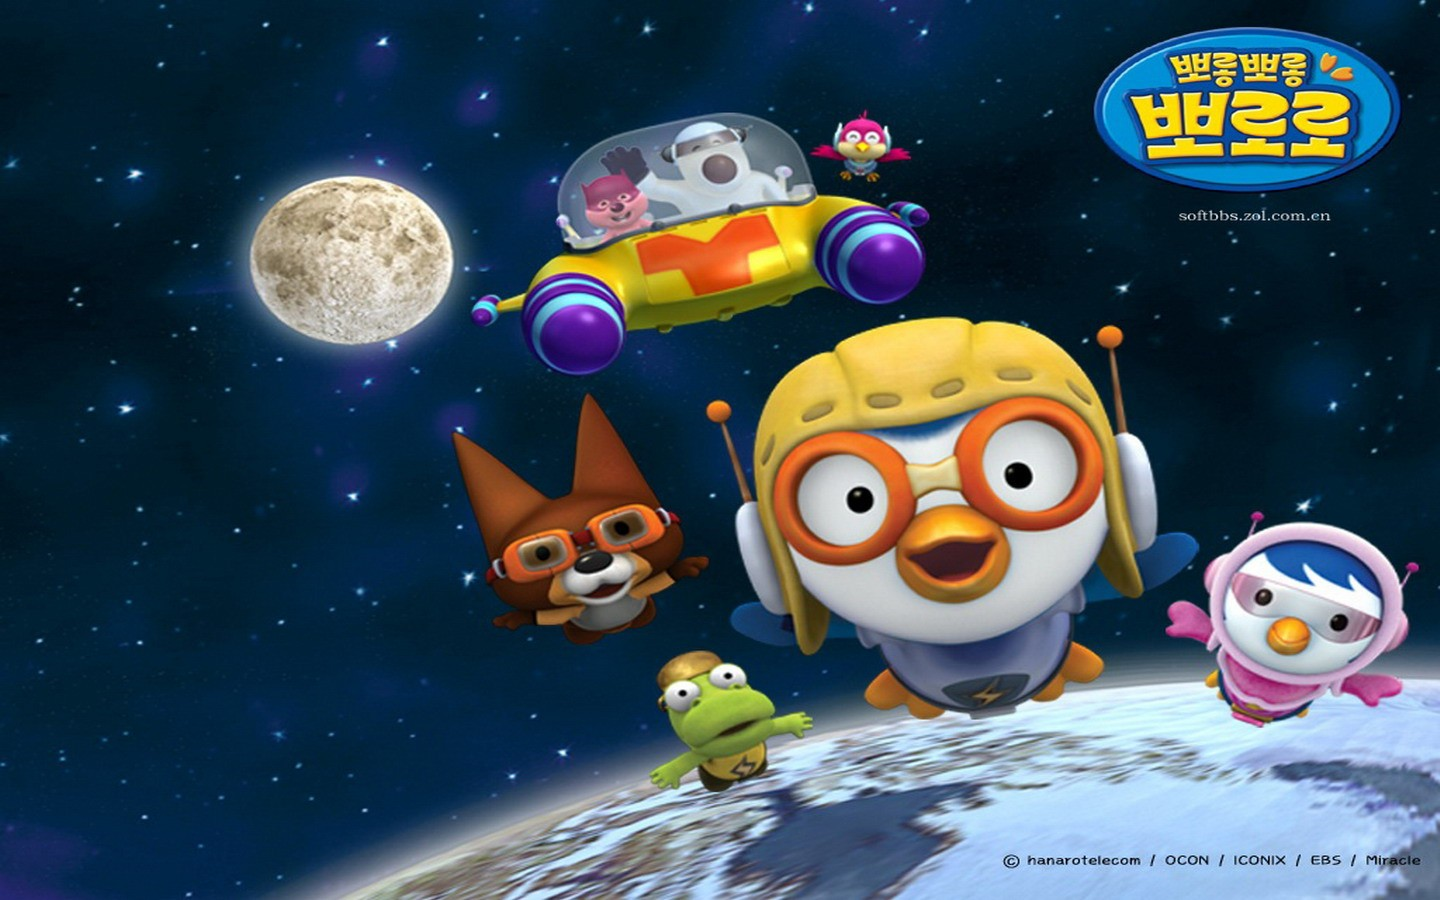 Pororo cartoon wallpapers 6 1440x900 wallpaper download pororo pororo cartoon wallpapers 6 1440x900 thecheapjerseys Image collections